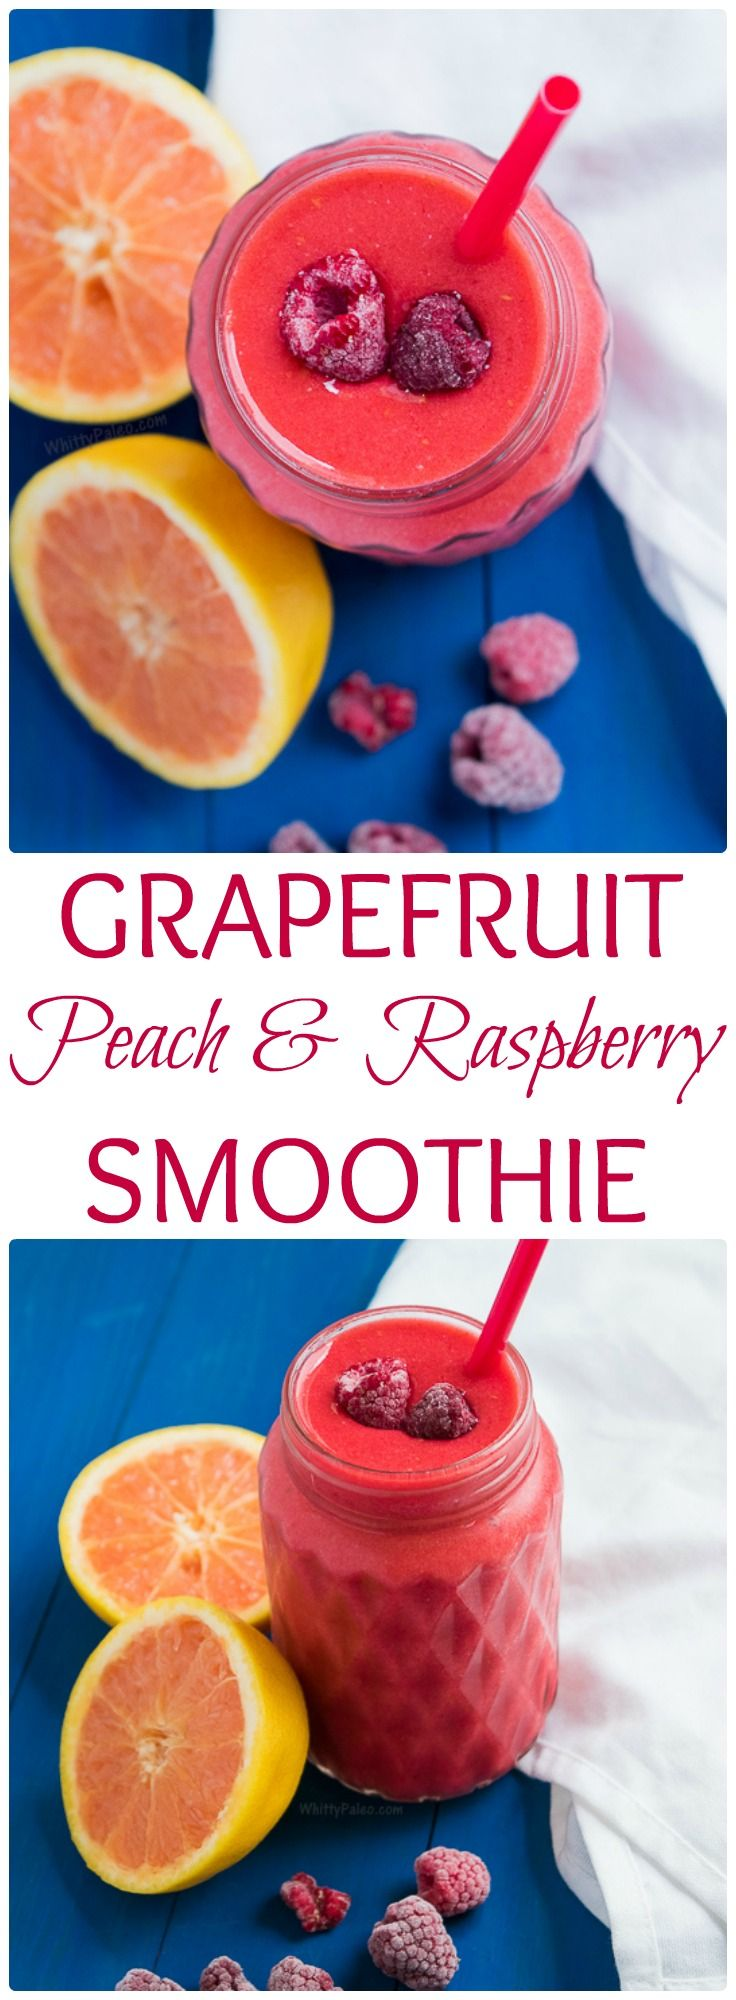 Paleo Summer Grapefruit Peach Raspberry Smoothie - refresh yourself this summer with this sweet and cooling drink! From WhittyPaleo.com